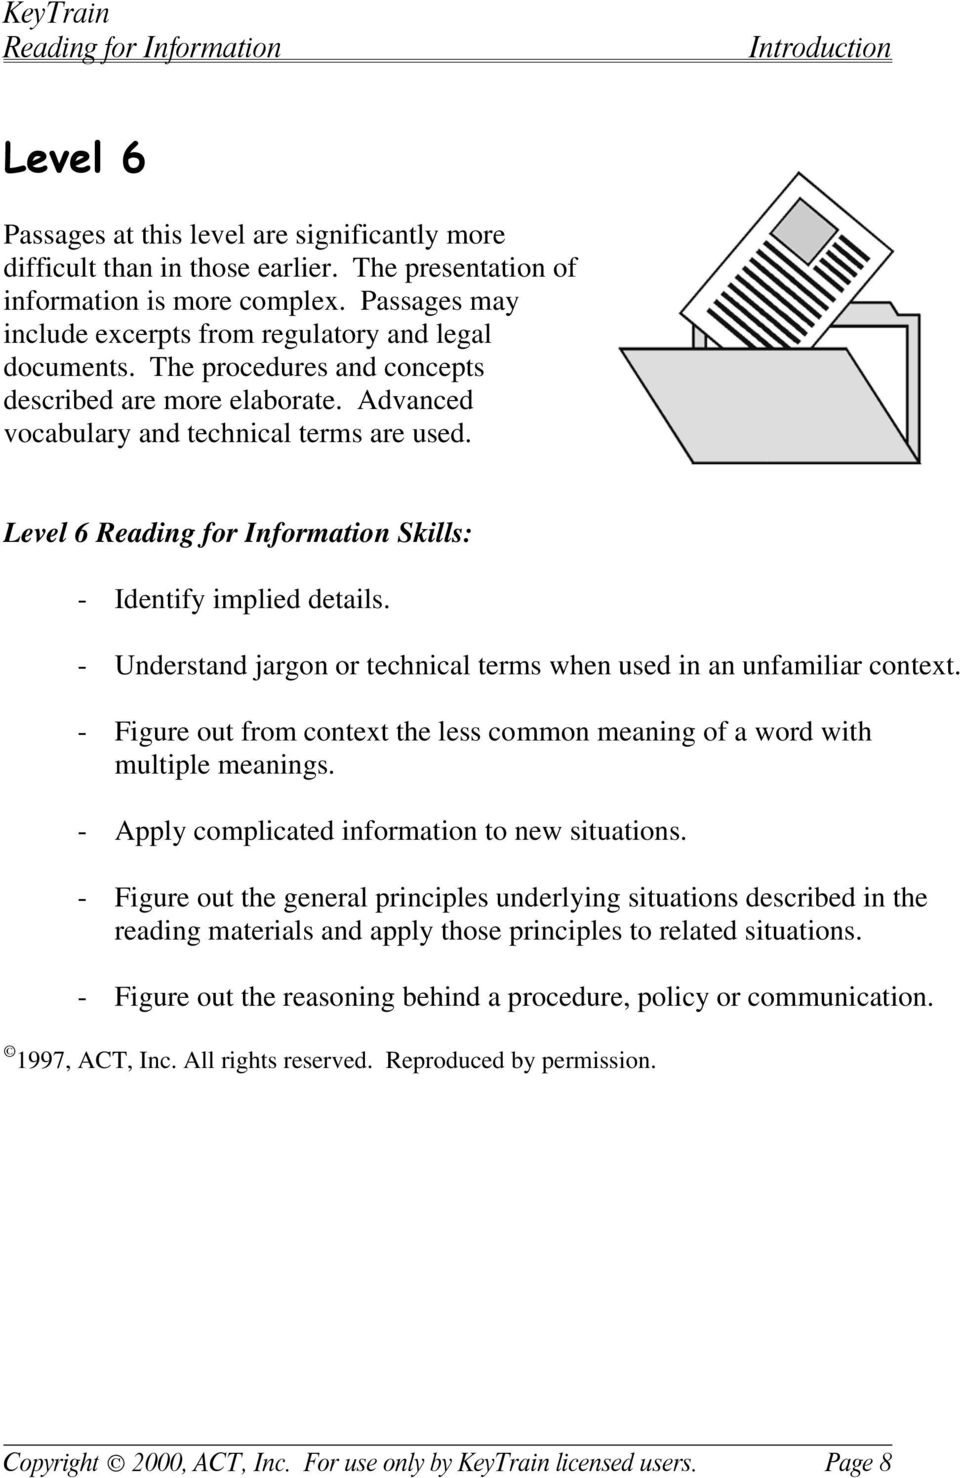 Level 6 Skills: - Identify implied details. - Understand jargon or technical terms when used in an unfamiliar context.